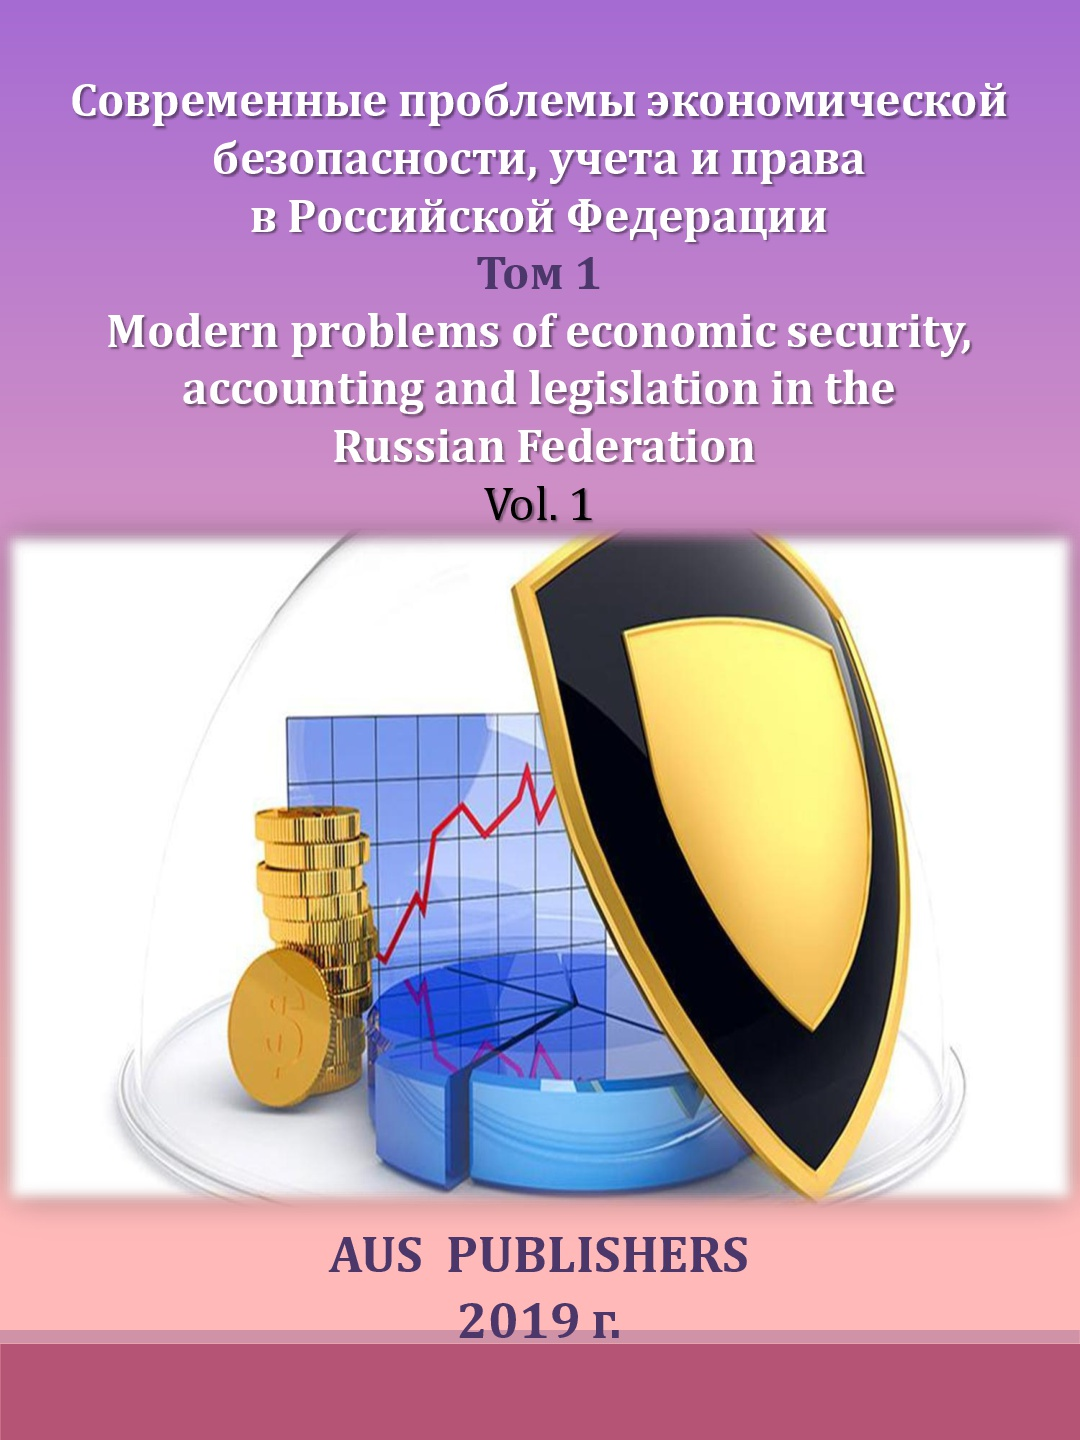 Modern problems of an economic safety, accounting and the right in the Russian Federation. Vol.1